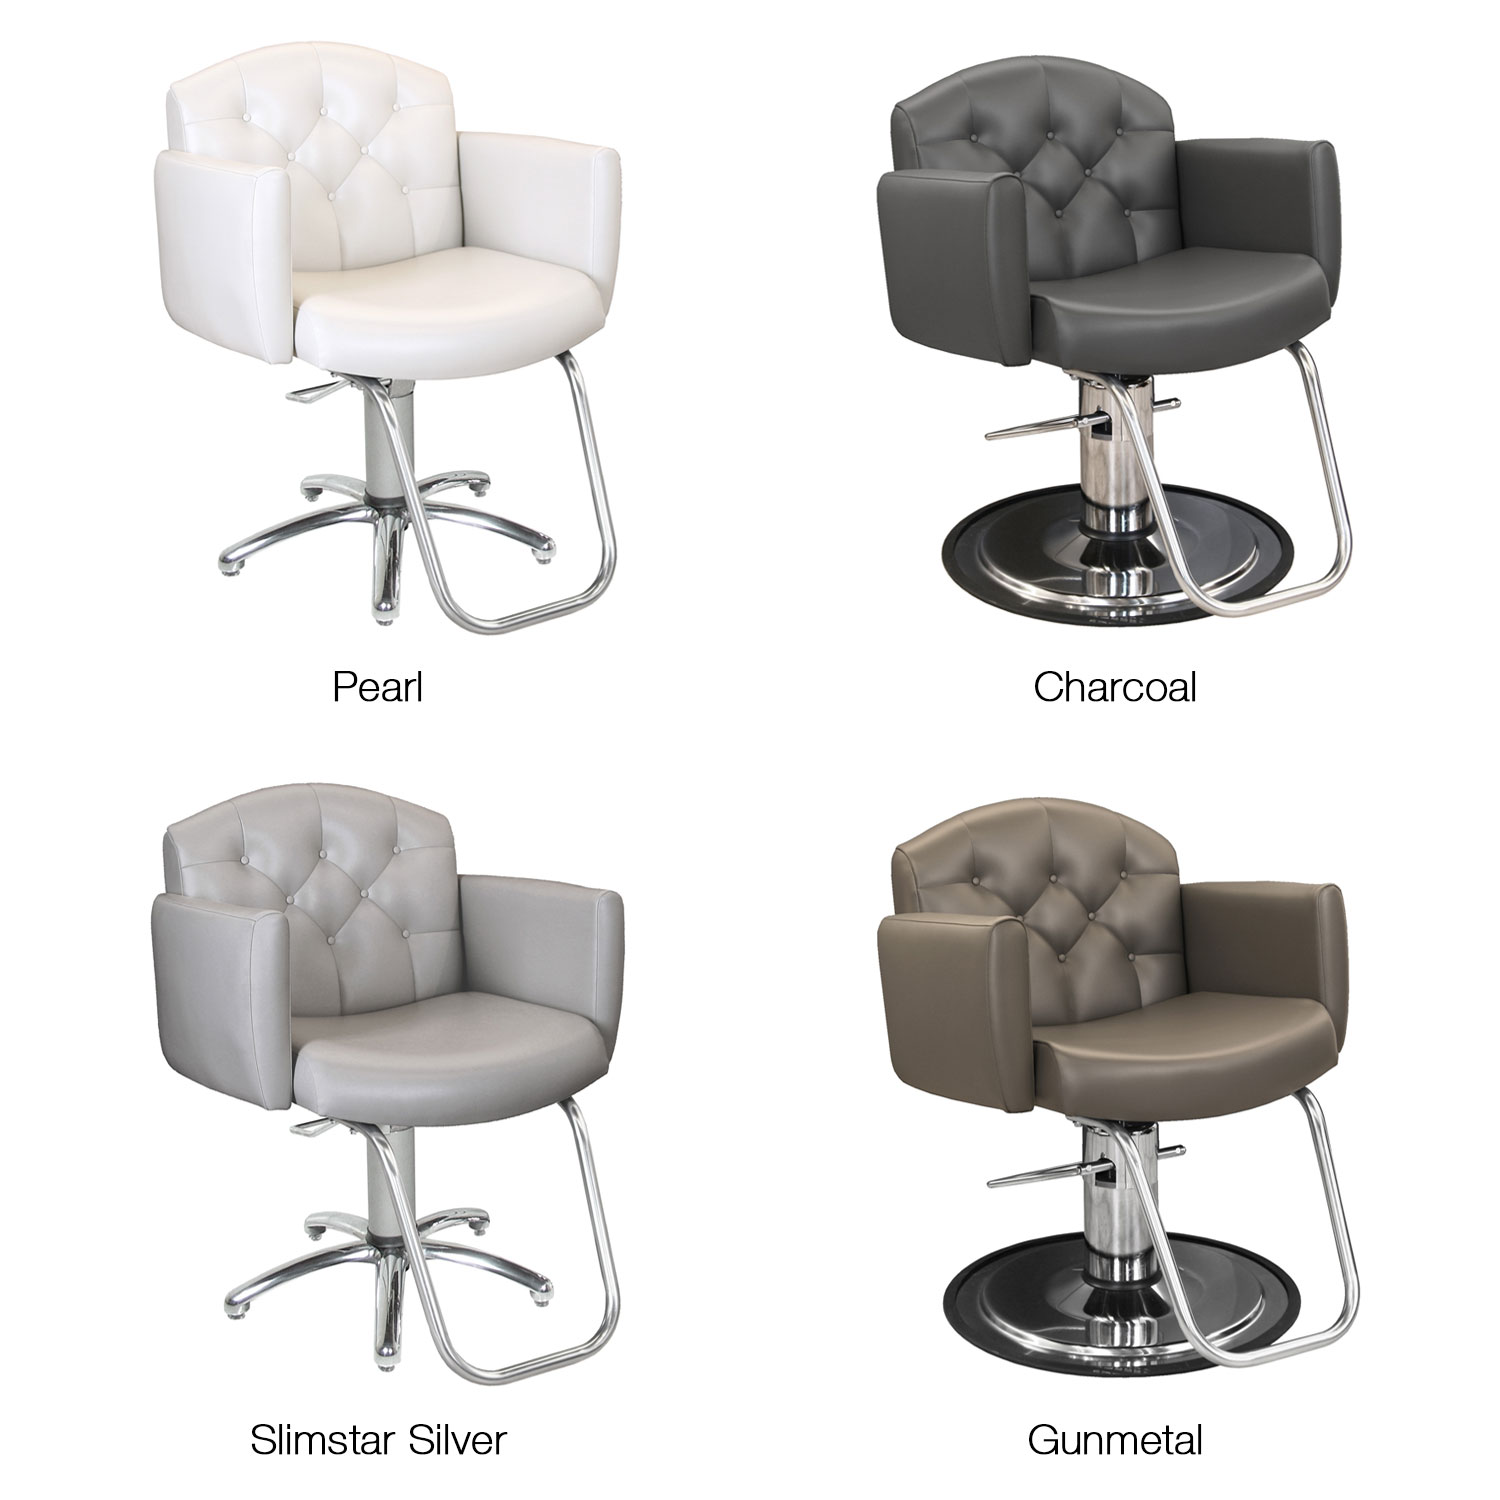 Collins 7100 Ashton Styling Chair alternative product image 1